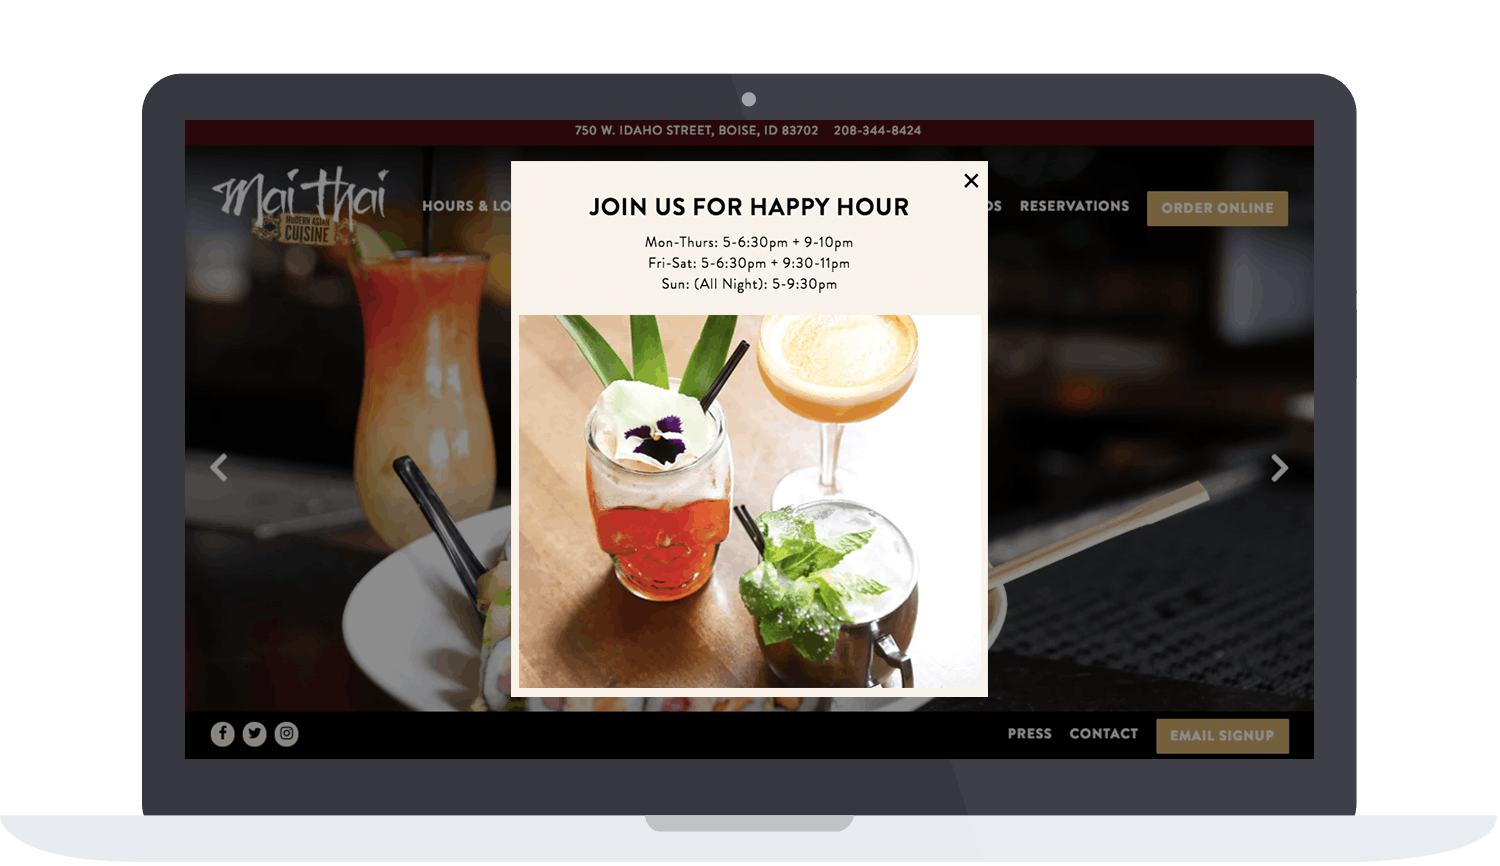 Mai Thai's happy hour pop up on website